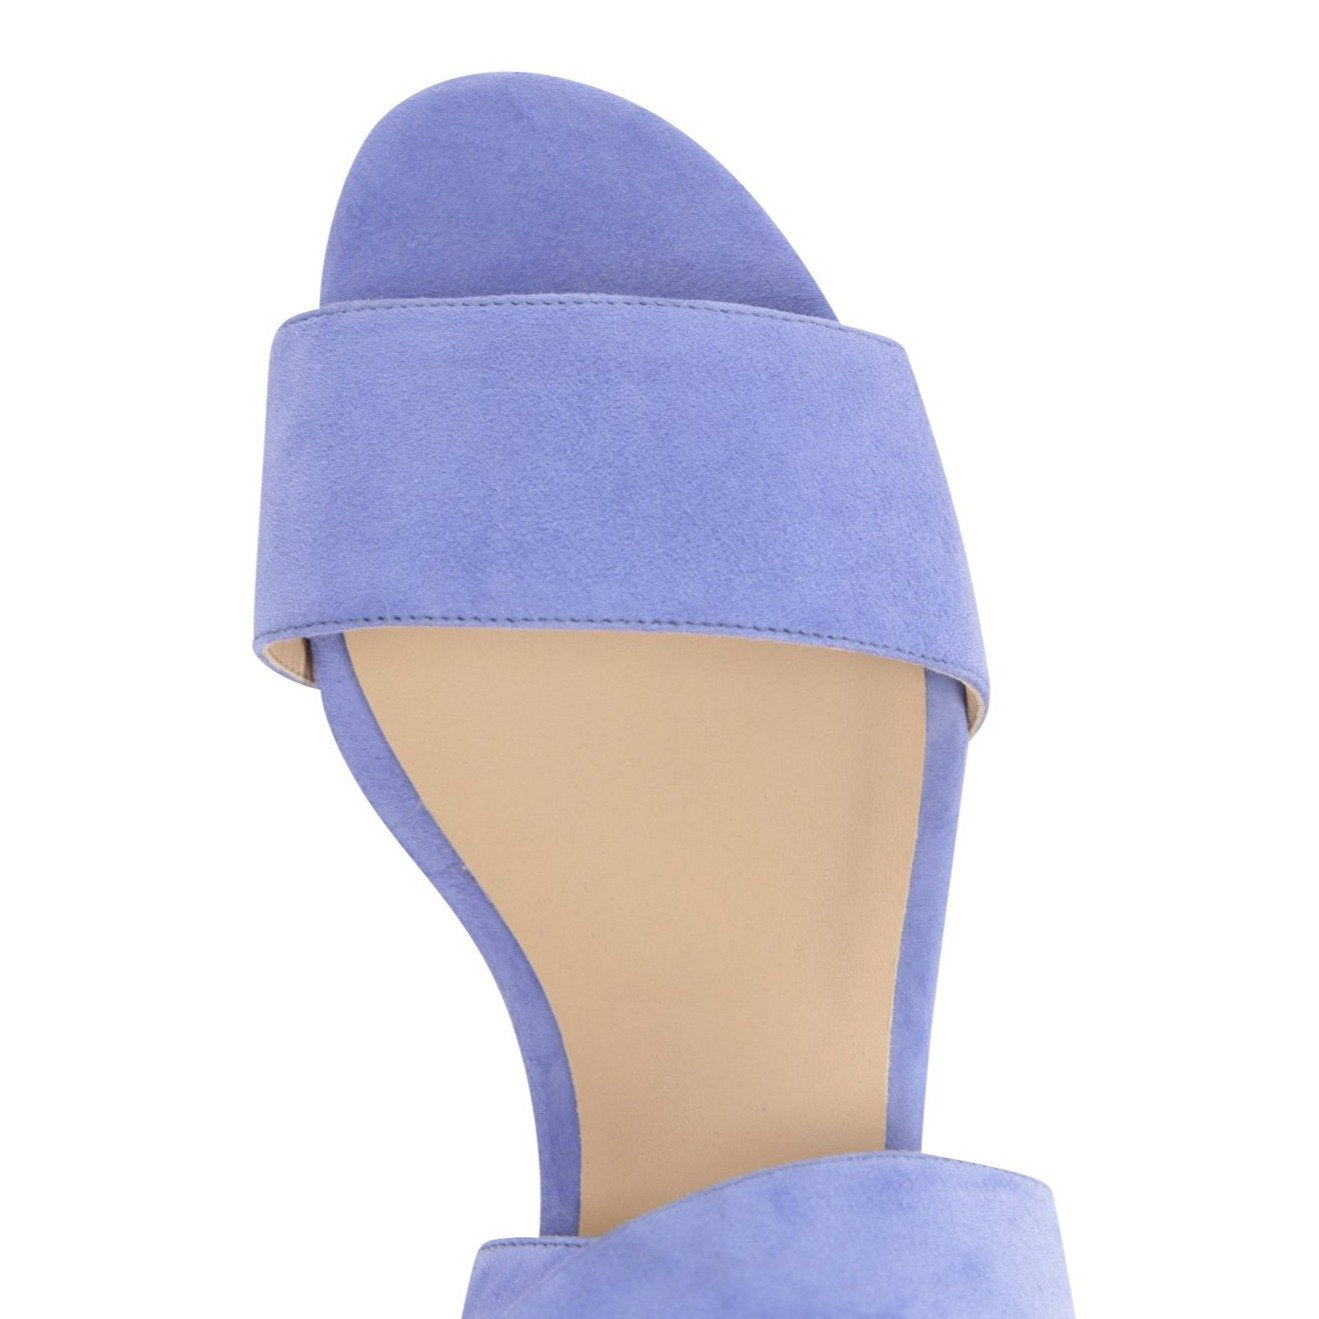 LUCCA - Velukid Blue Dusk, VIAJIYU - Women's Hand Made Sustainable Luxury Shoes. Made in Italy. Made to Order.